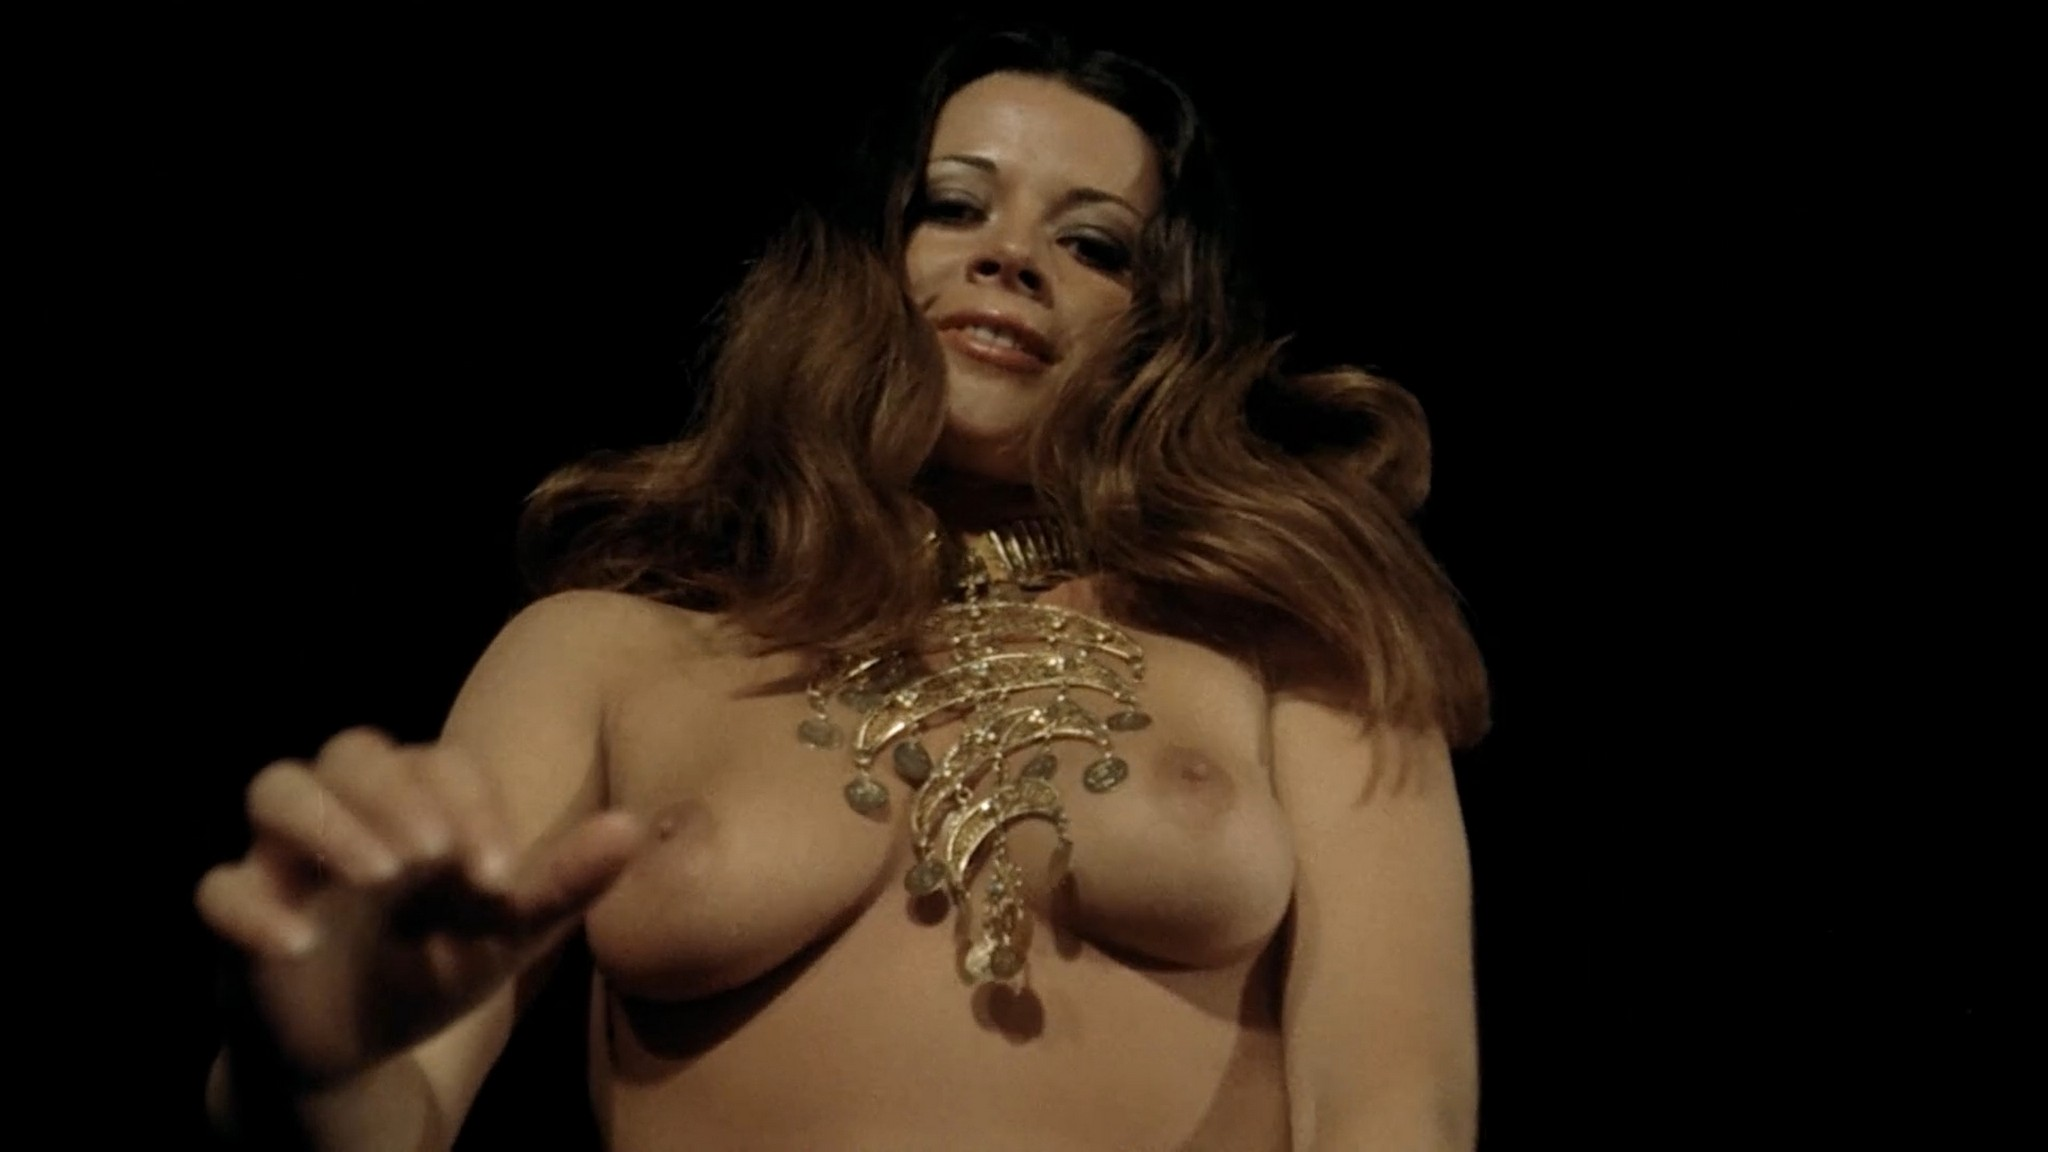 Joelle Coeur nude full frontal and others nude – The Demoniacs 1974 HD 1080p BluRay001